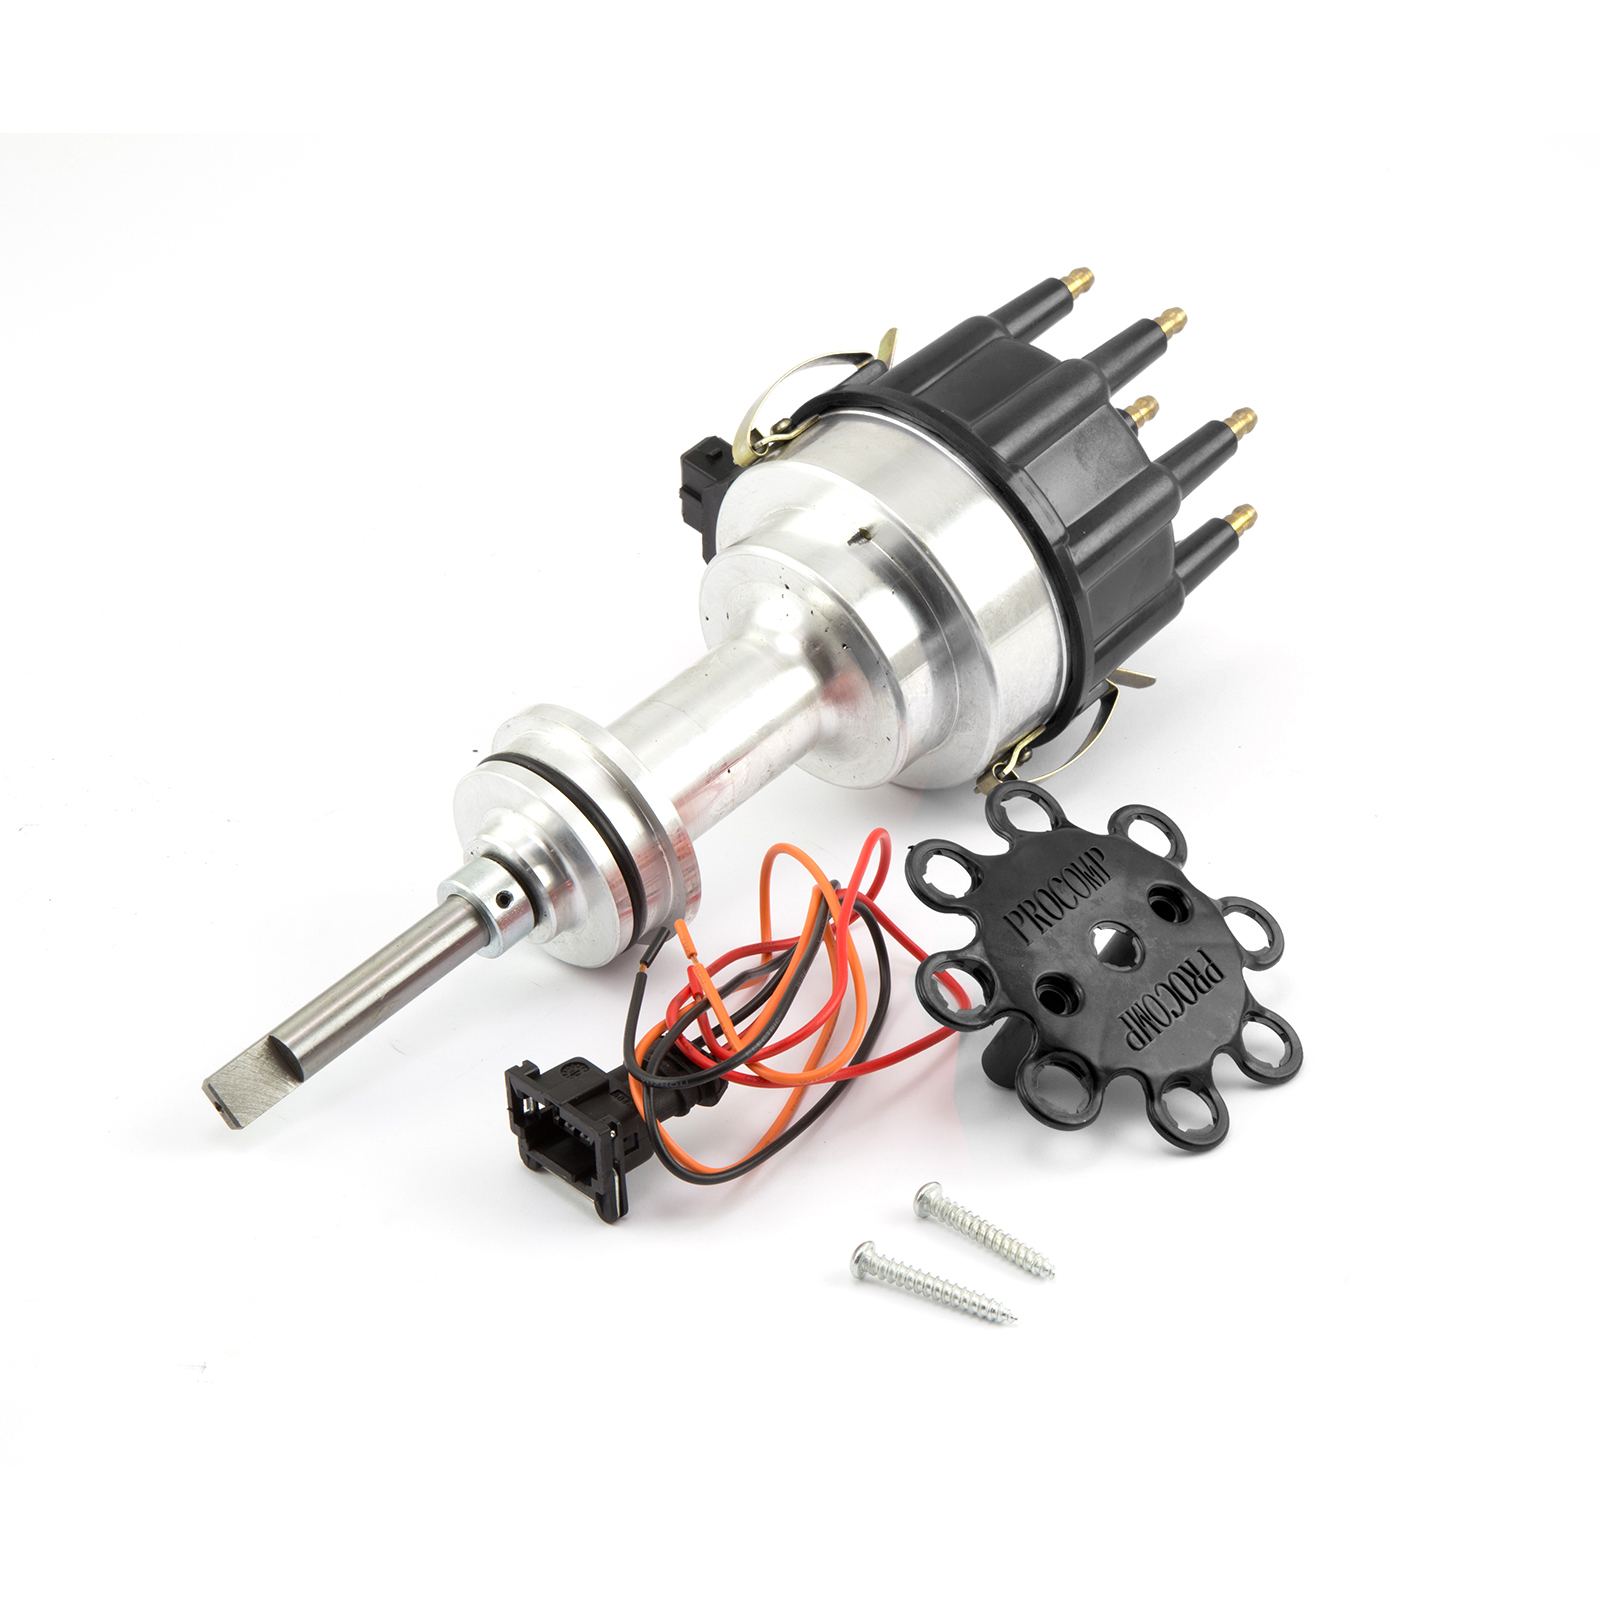 Mopar Chrysler BB 440 8020 Series Pro Billet Ready to Run Distributor [Black]